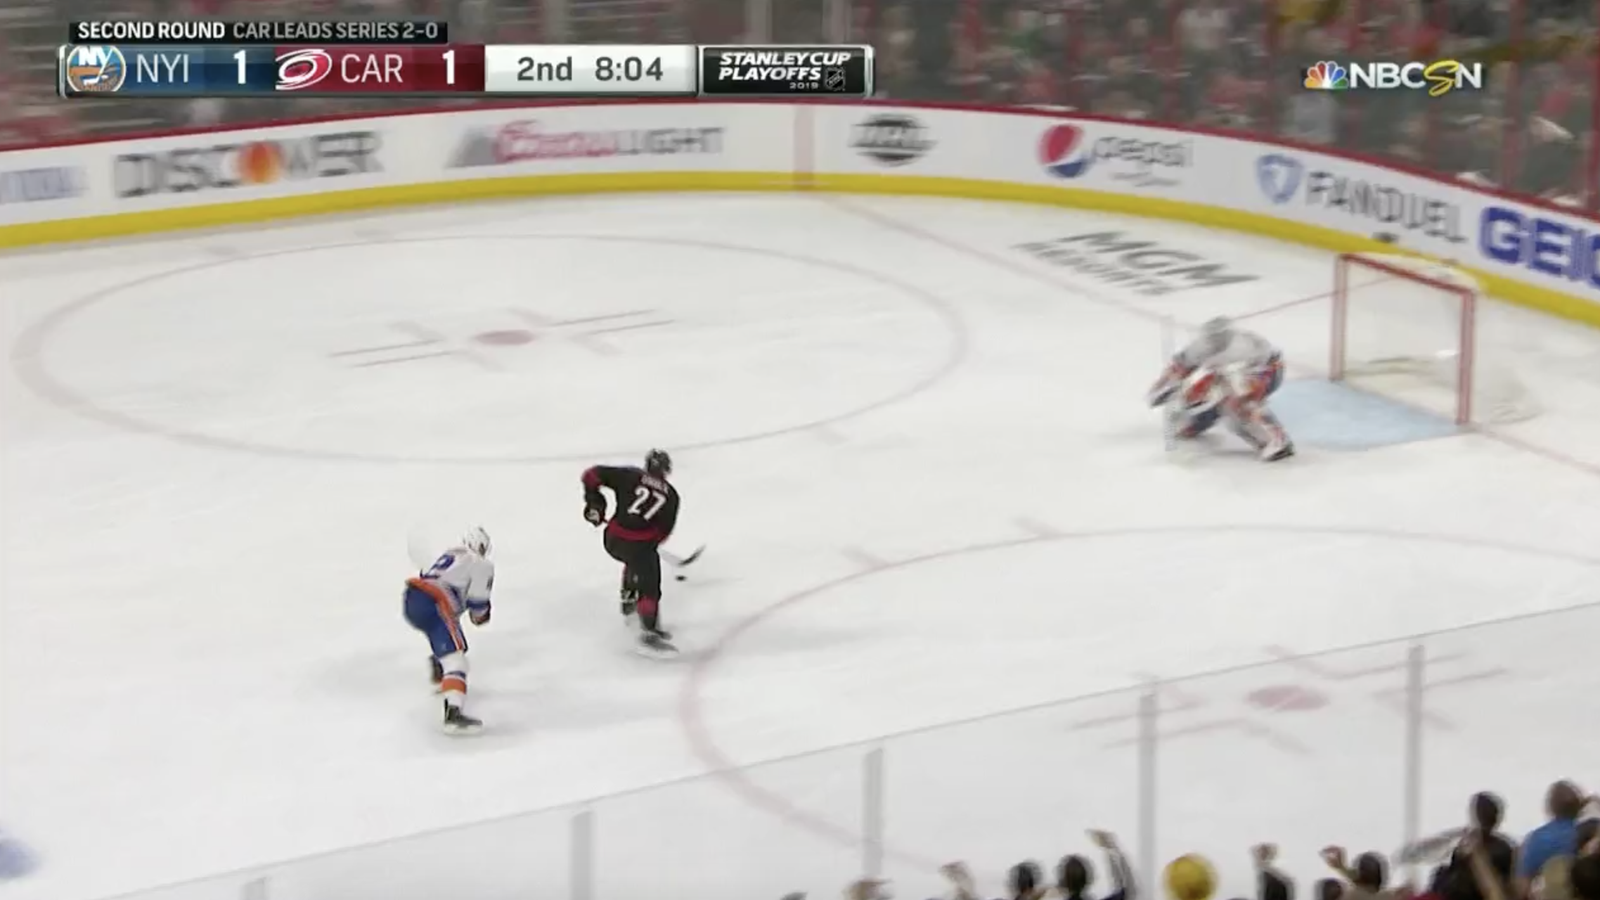 Hurricanes' Justin Faulk Waltzes Out Of Penalty Box And Directly Into All Kinds Of Glory - Deadspin